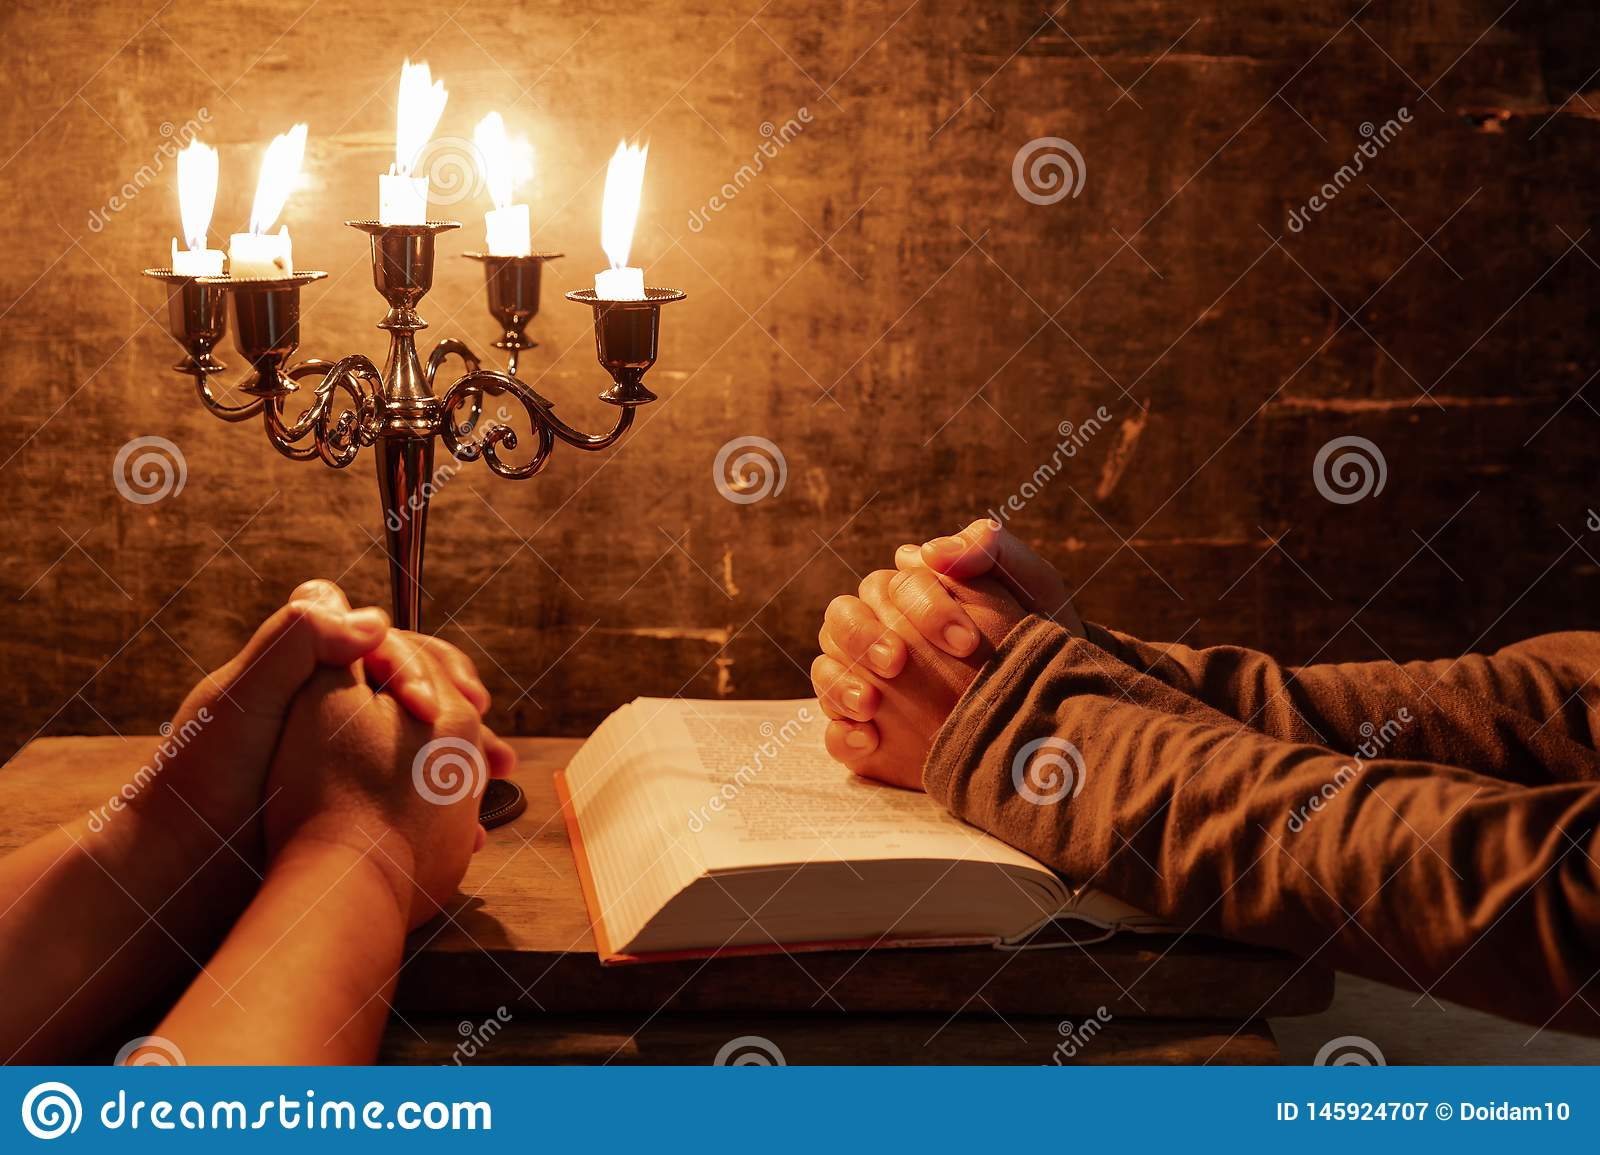 Religious Female Crossed Hands In Prayer With Bible And